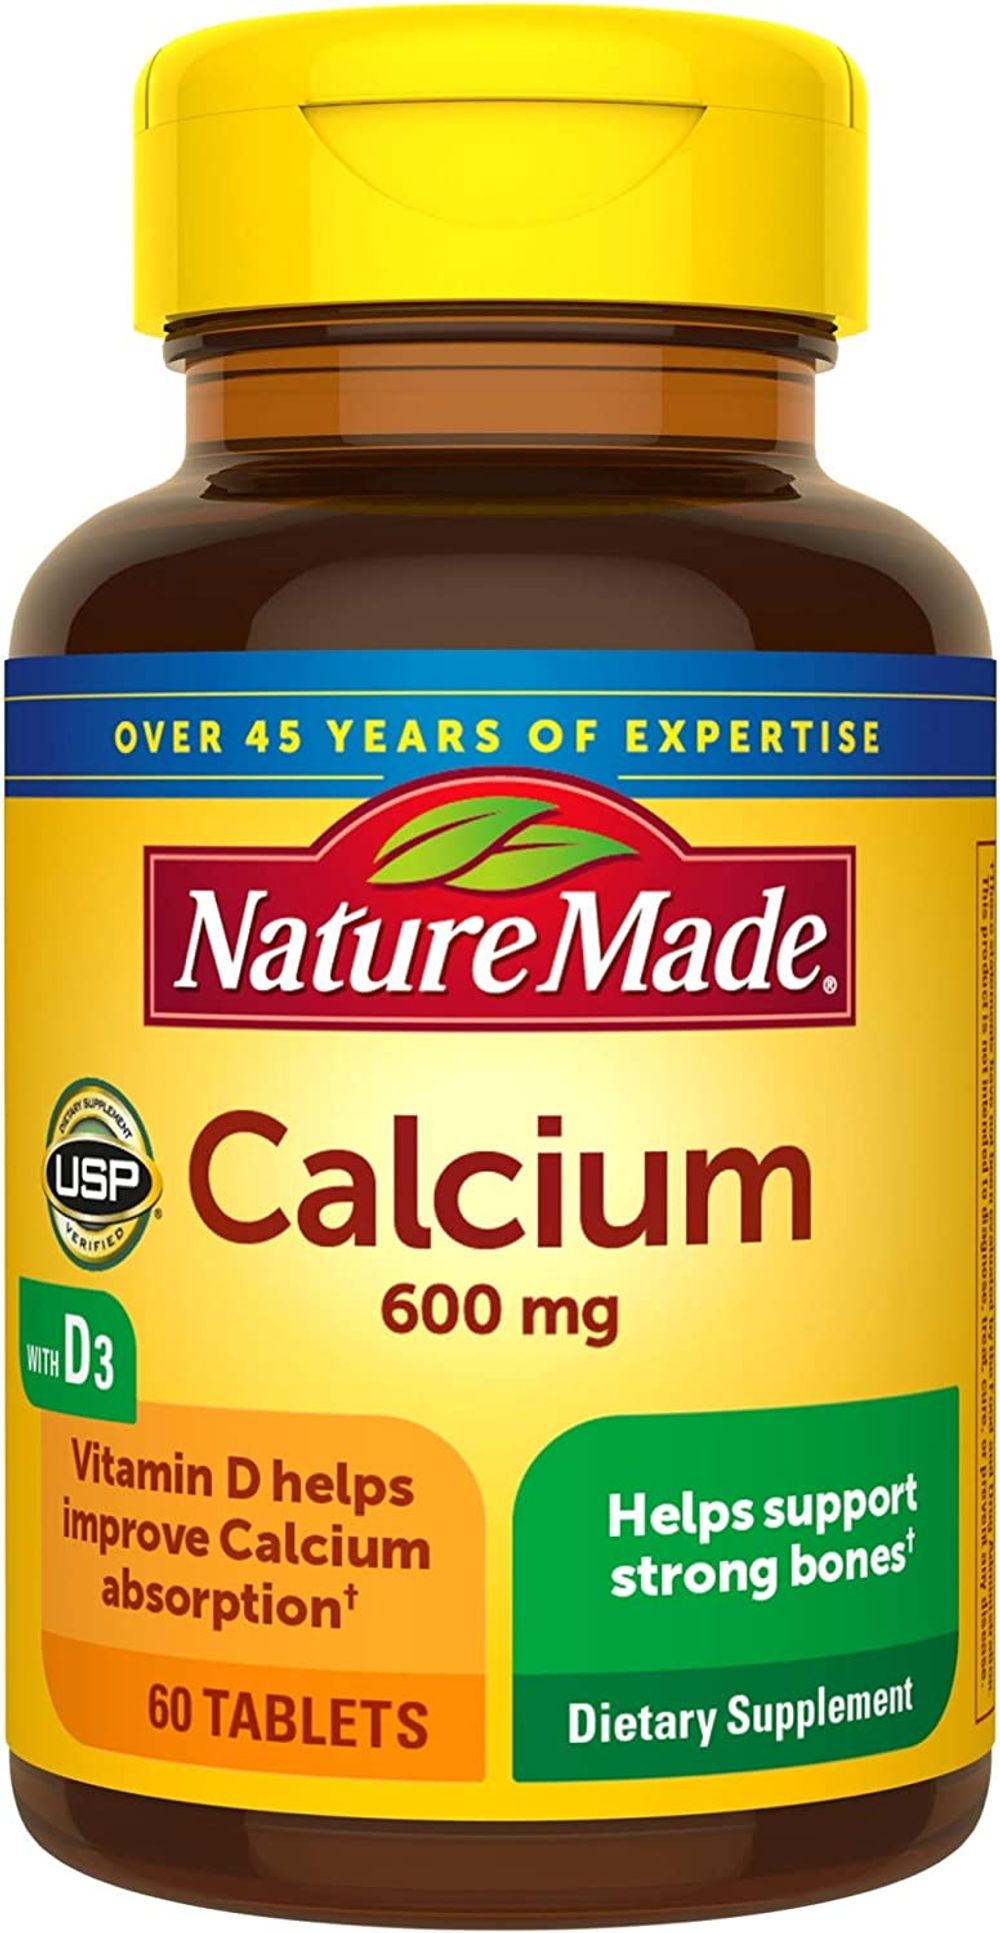 Nature Made Calcium 600 mg Tablets with Vitamin D3, 60 Count for Bone Health†